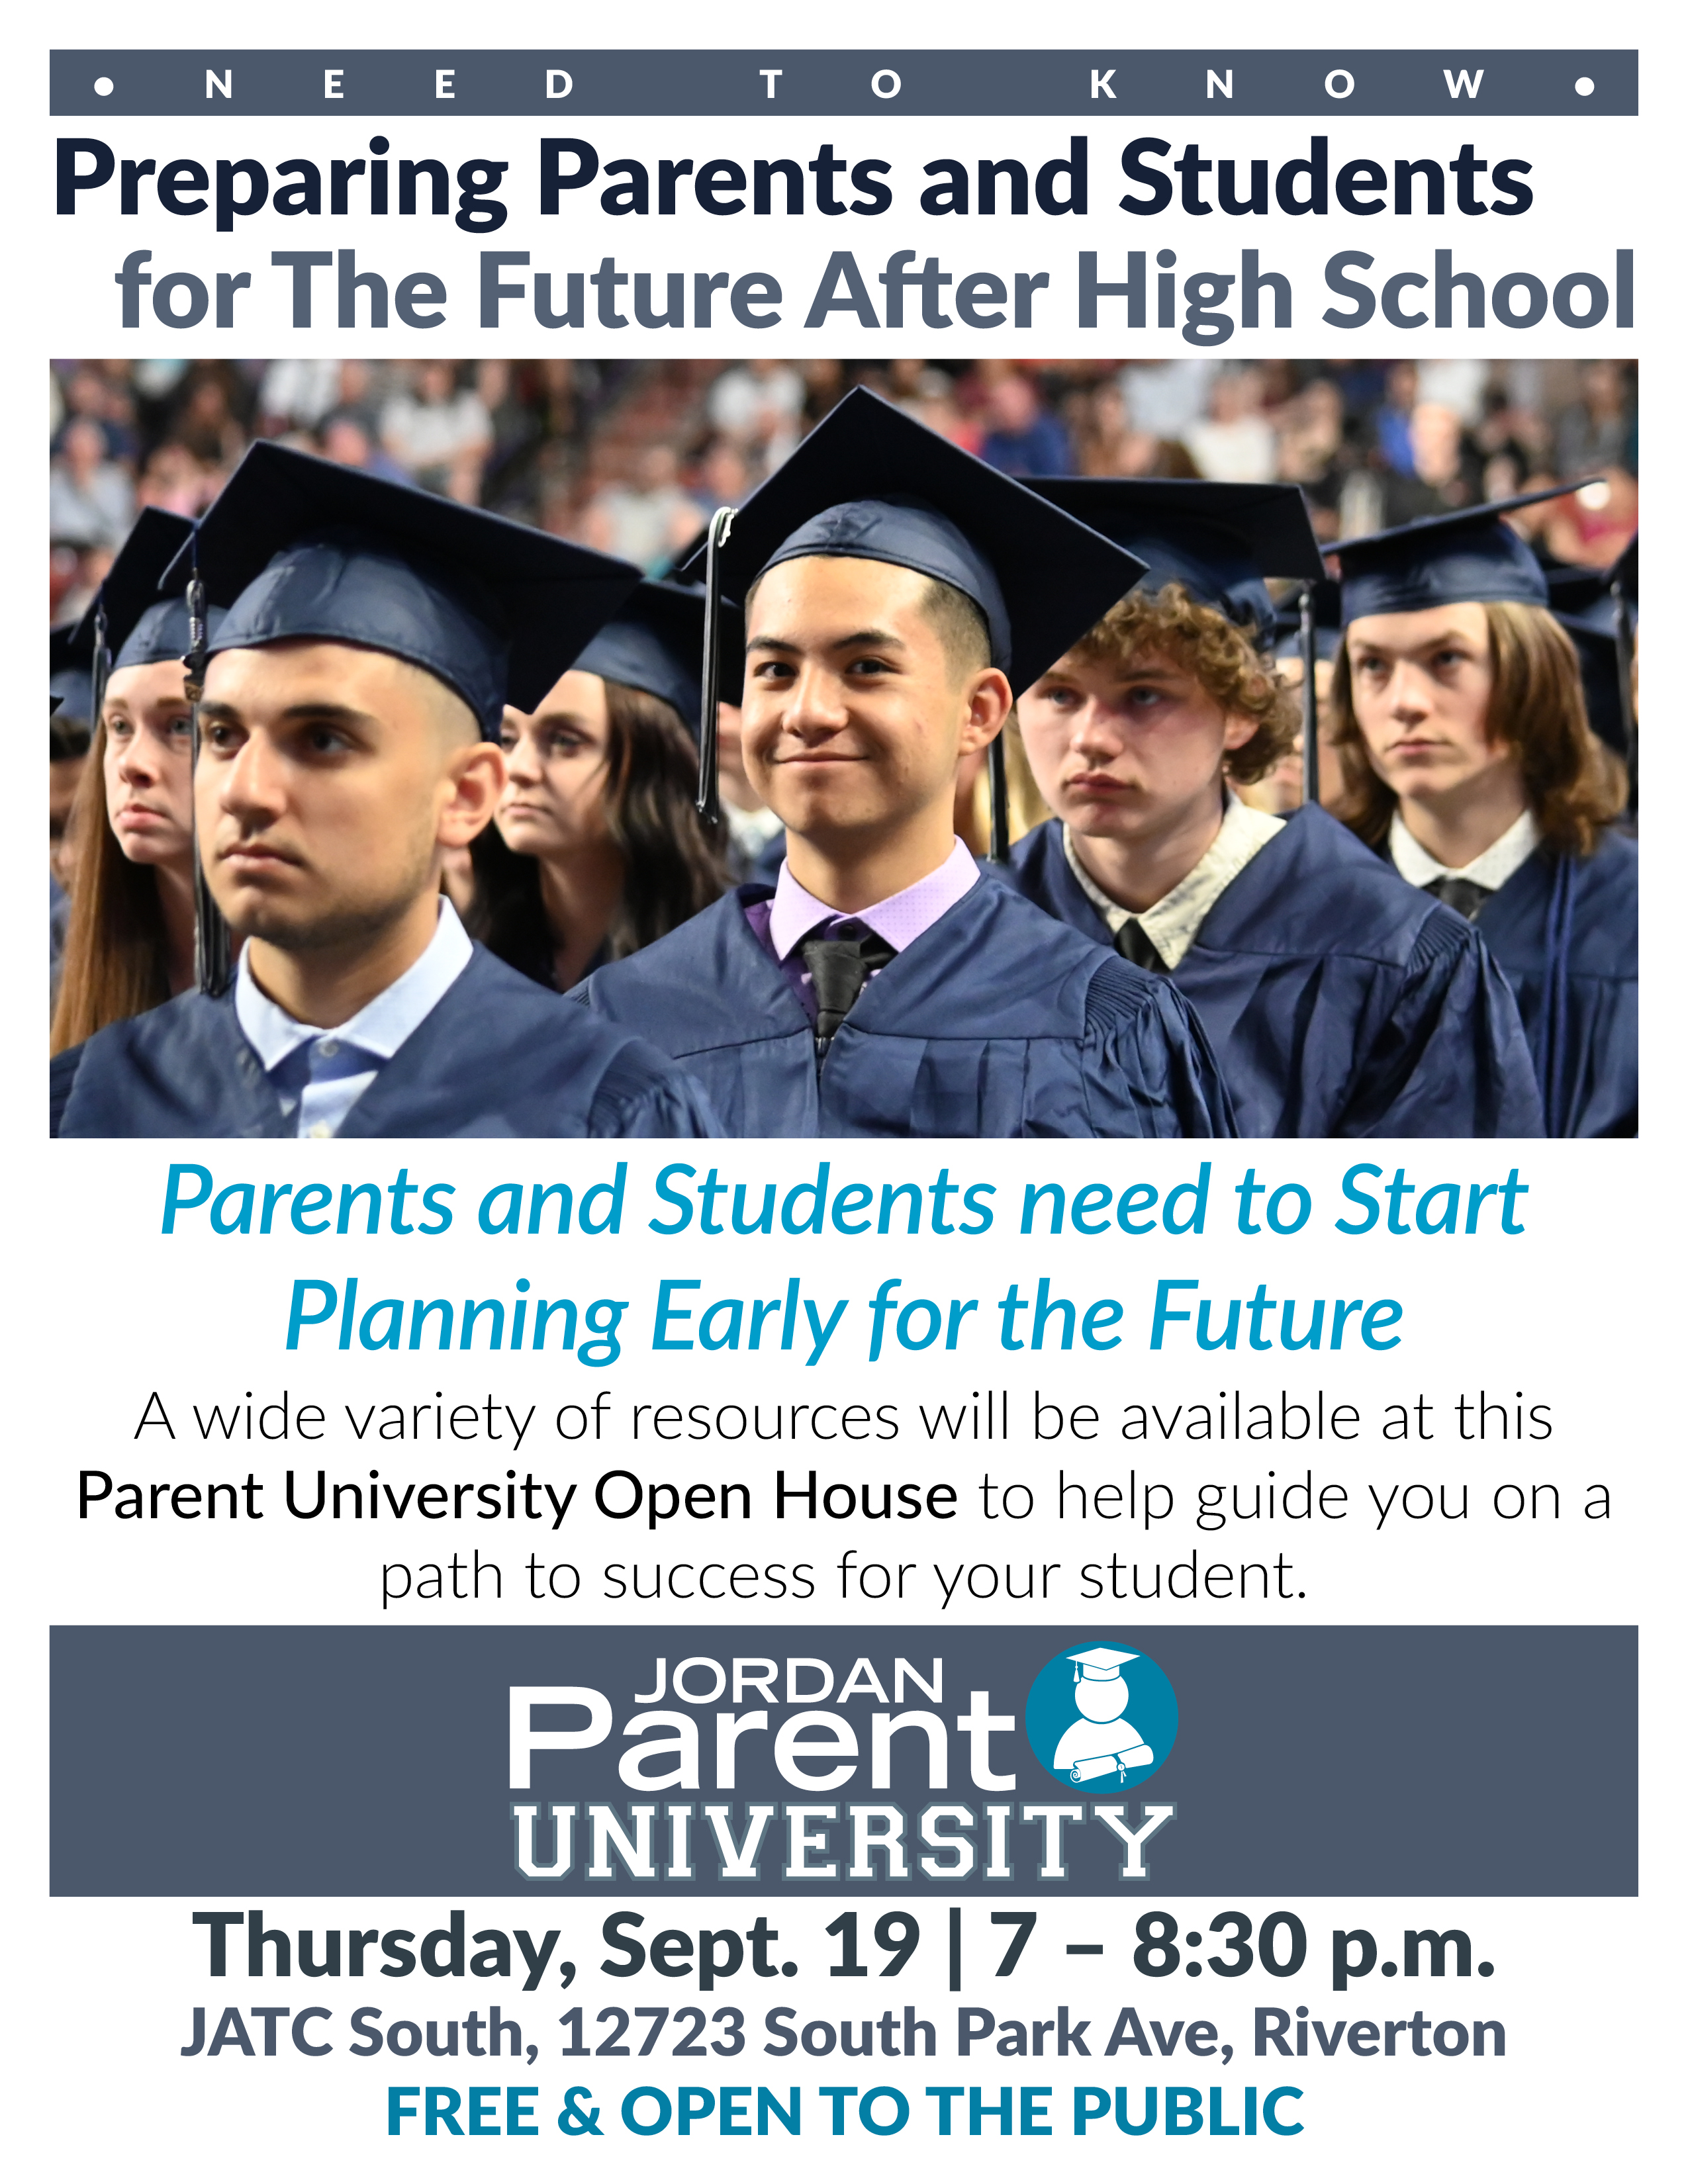 Need to Know - Preparing Parents and Students for the Future After High School